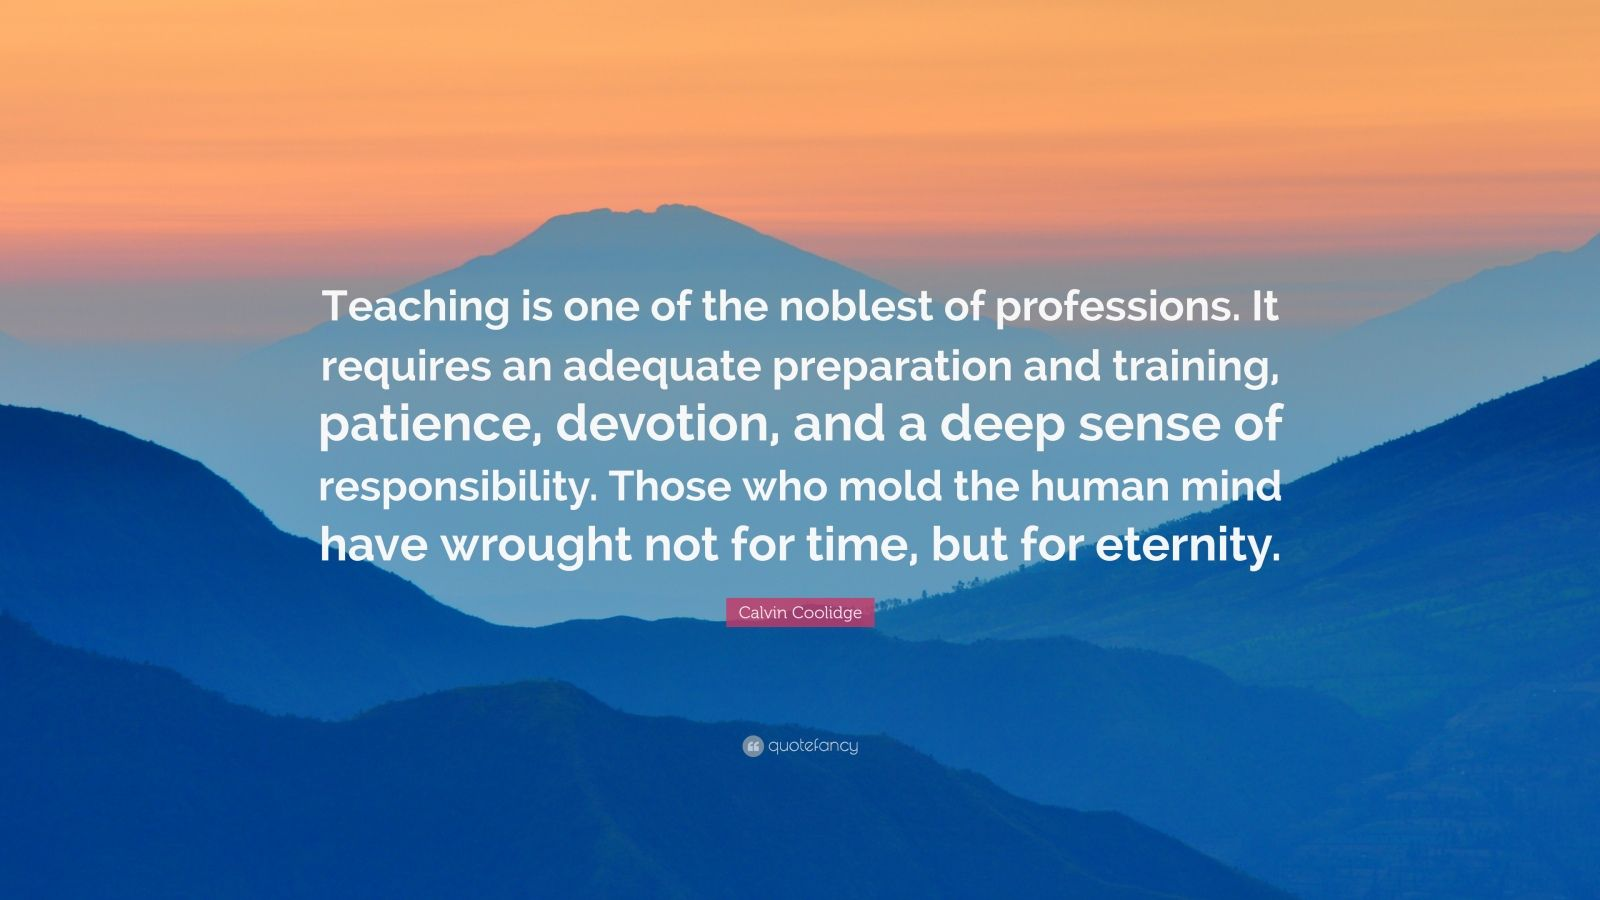 """Calvin Coolidge Quote: """"Teaching is one of the noblest of professions. It requires an adequate preparation and training, patience, devotion, and a deep sense of responsibility. Those who mold the human mind have wrought not for time, but for eternity."""""""